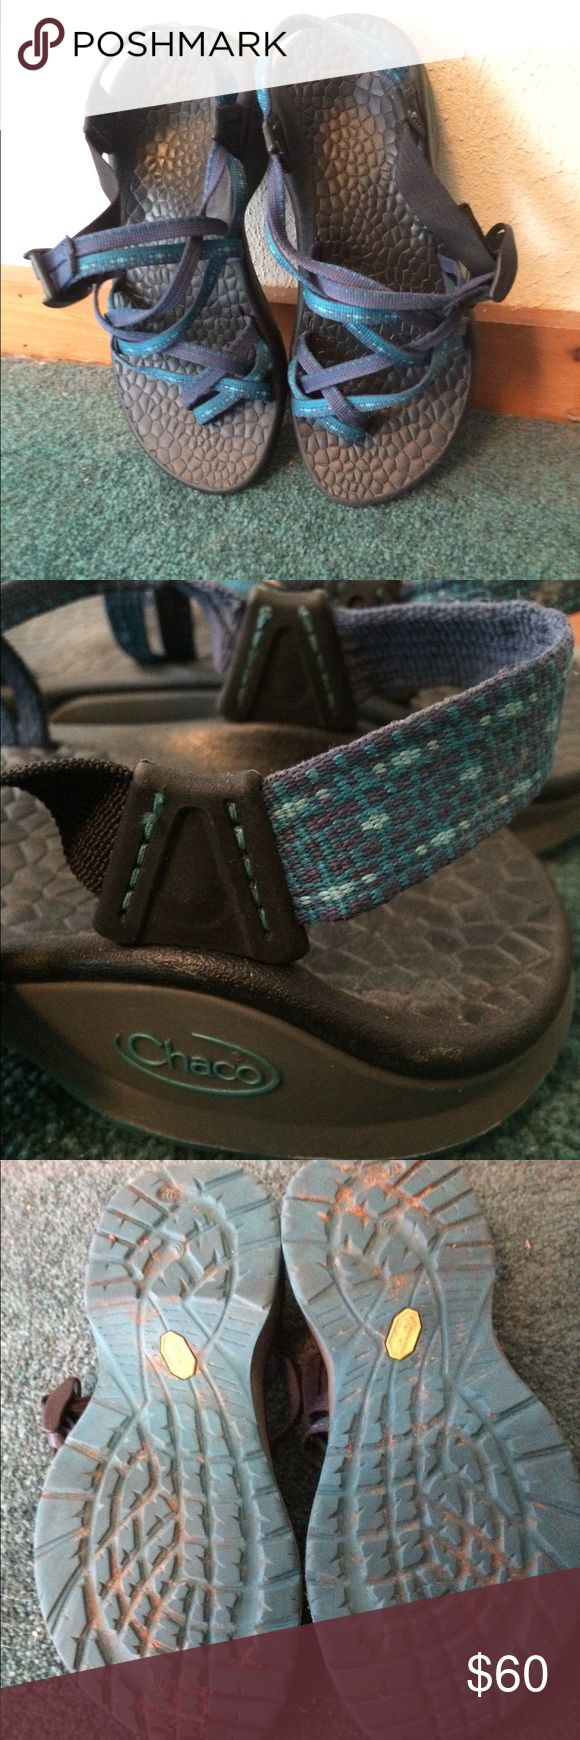 Chaco Sandals Worn only a couple of times. Add tô a bundle and I'll offer you a private discount! Chaco Shoes Sandals